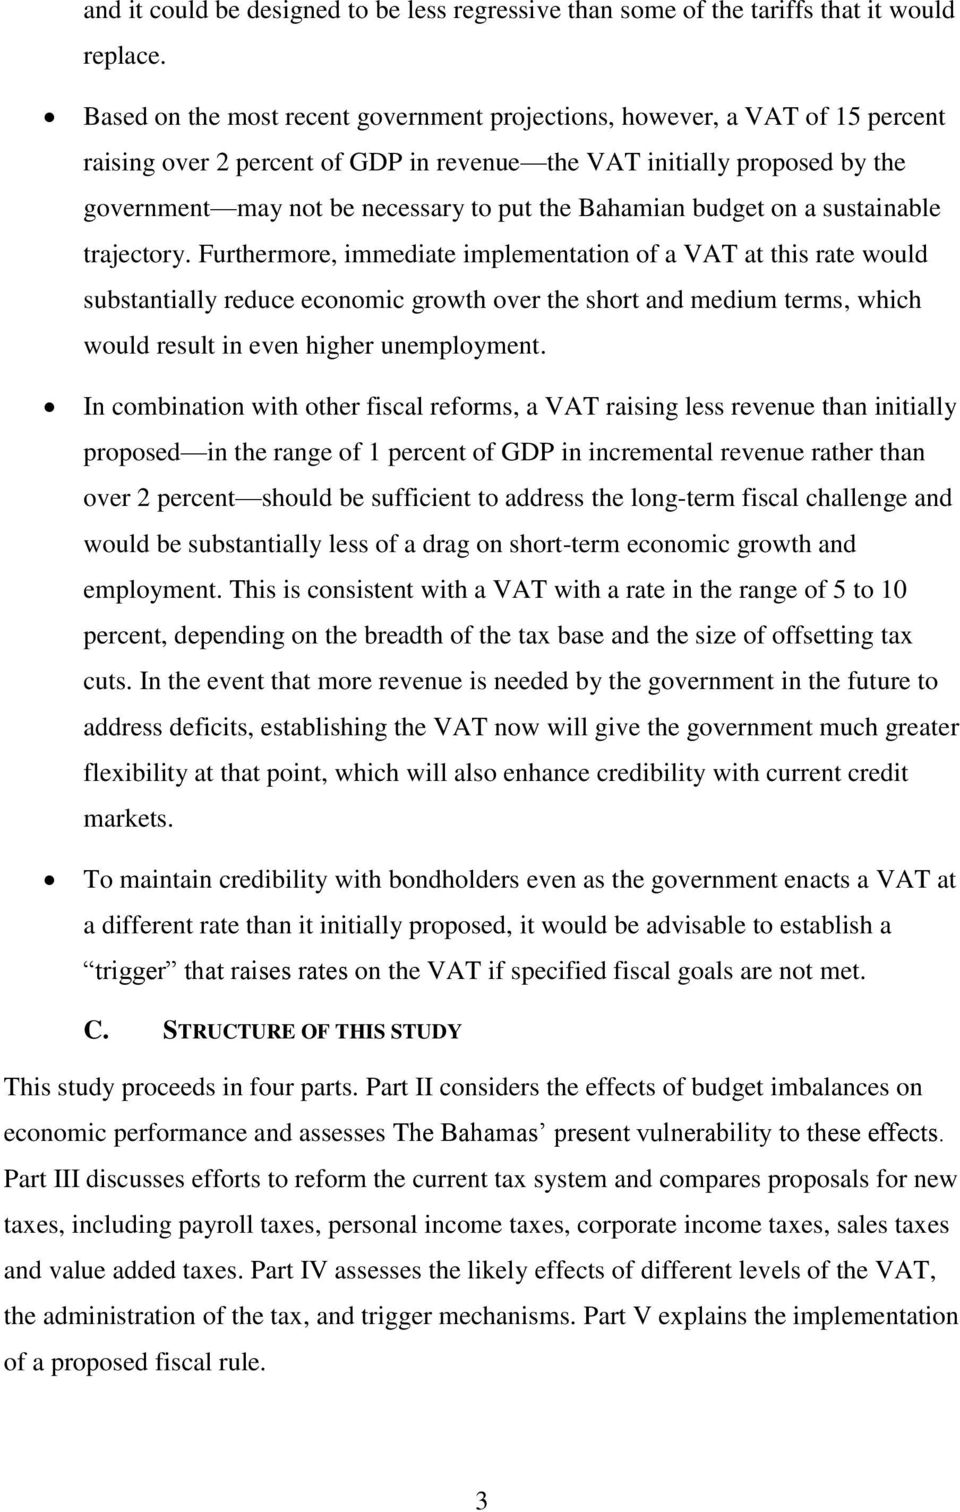 Bahamian budget on a sustainable trajectory.